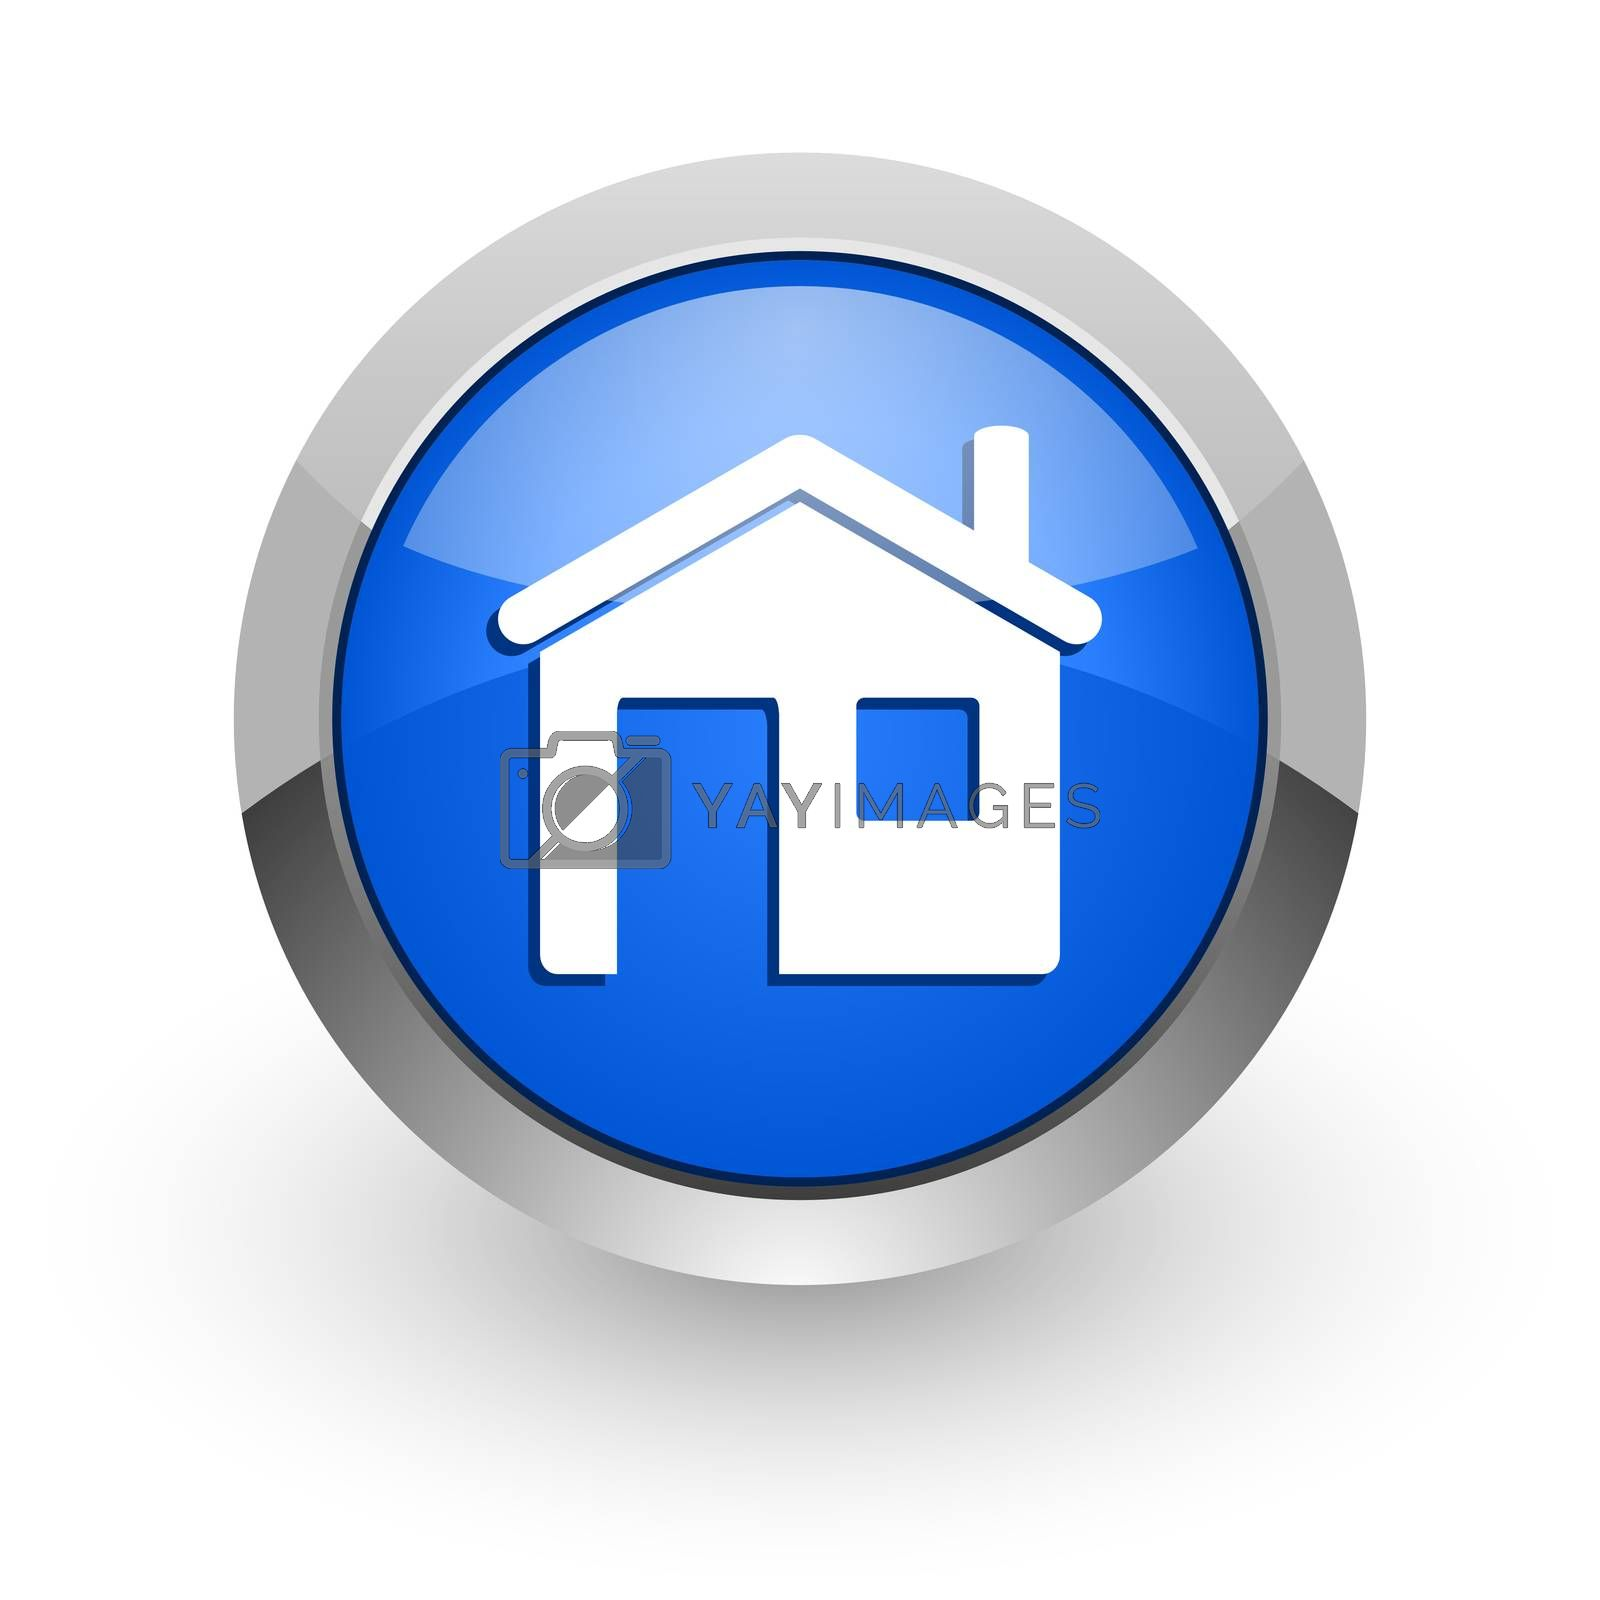 Royalty free image of house blue glossy web icon by alexwhite